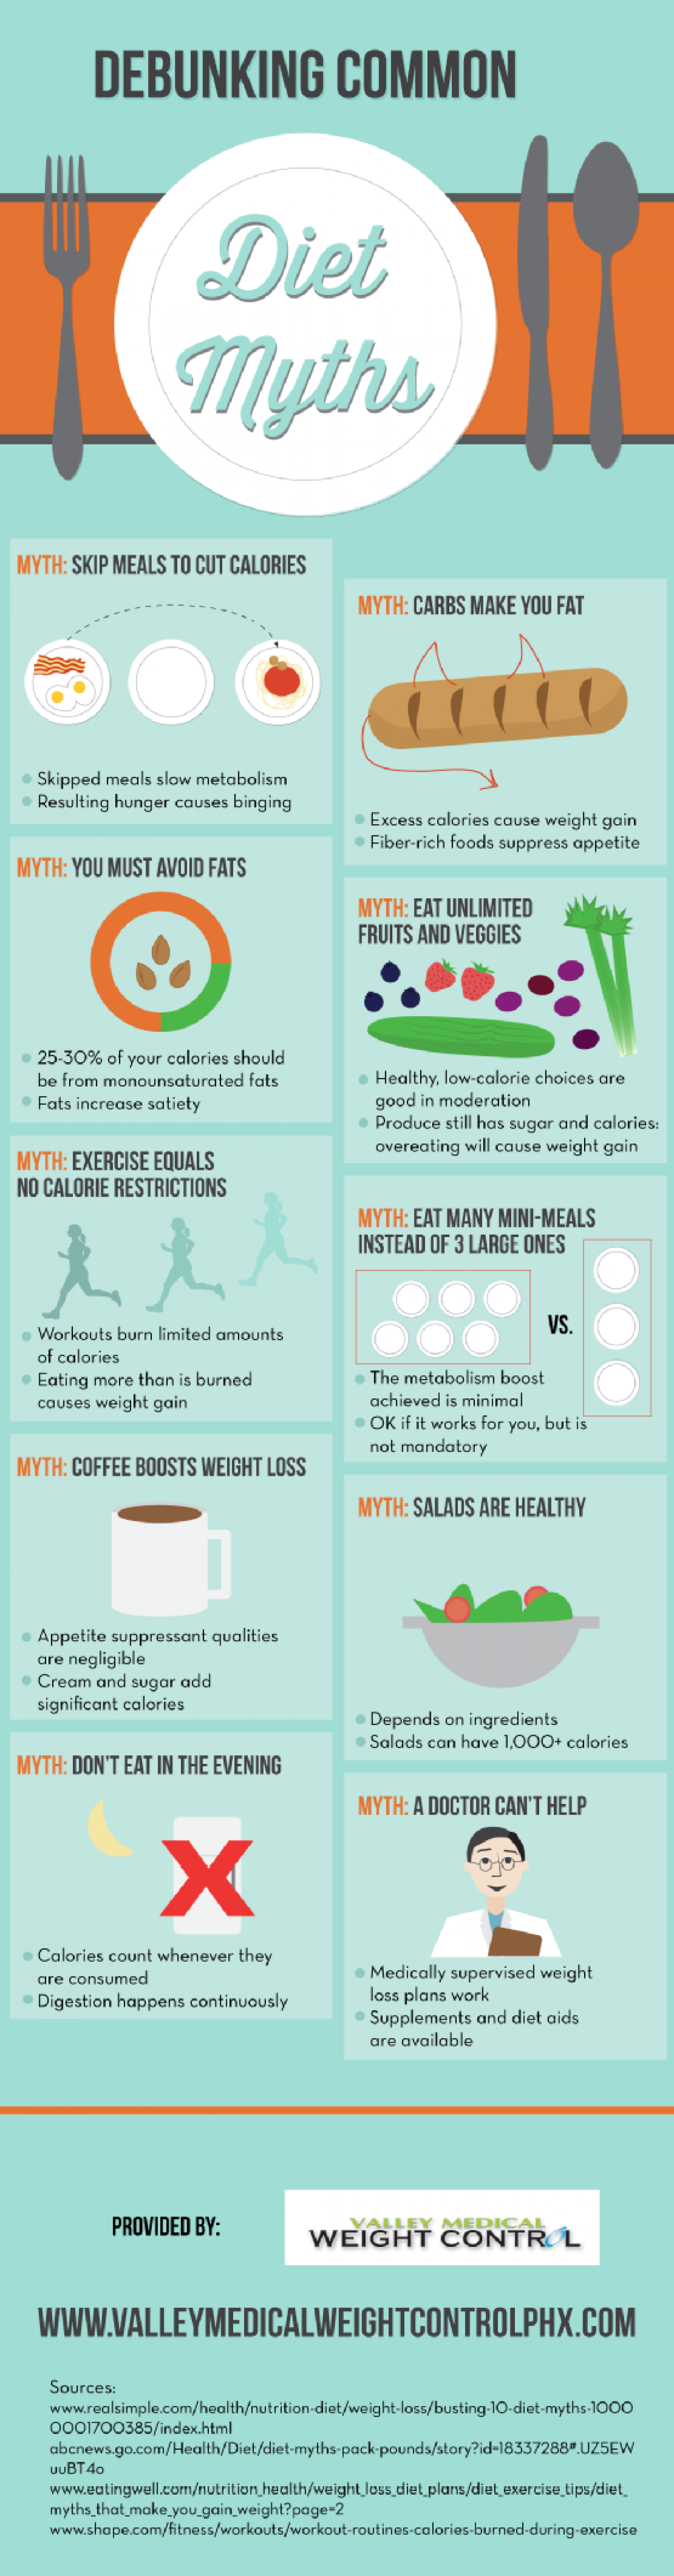 Debunking Common Diet Myths Infographic